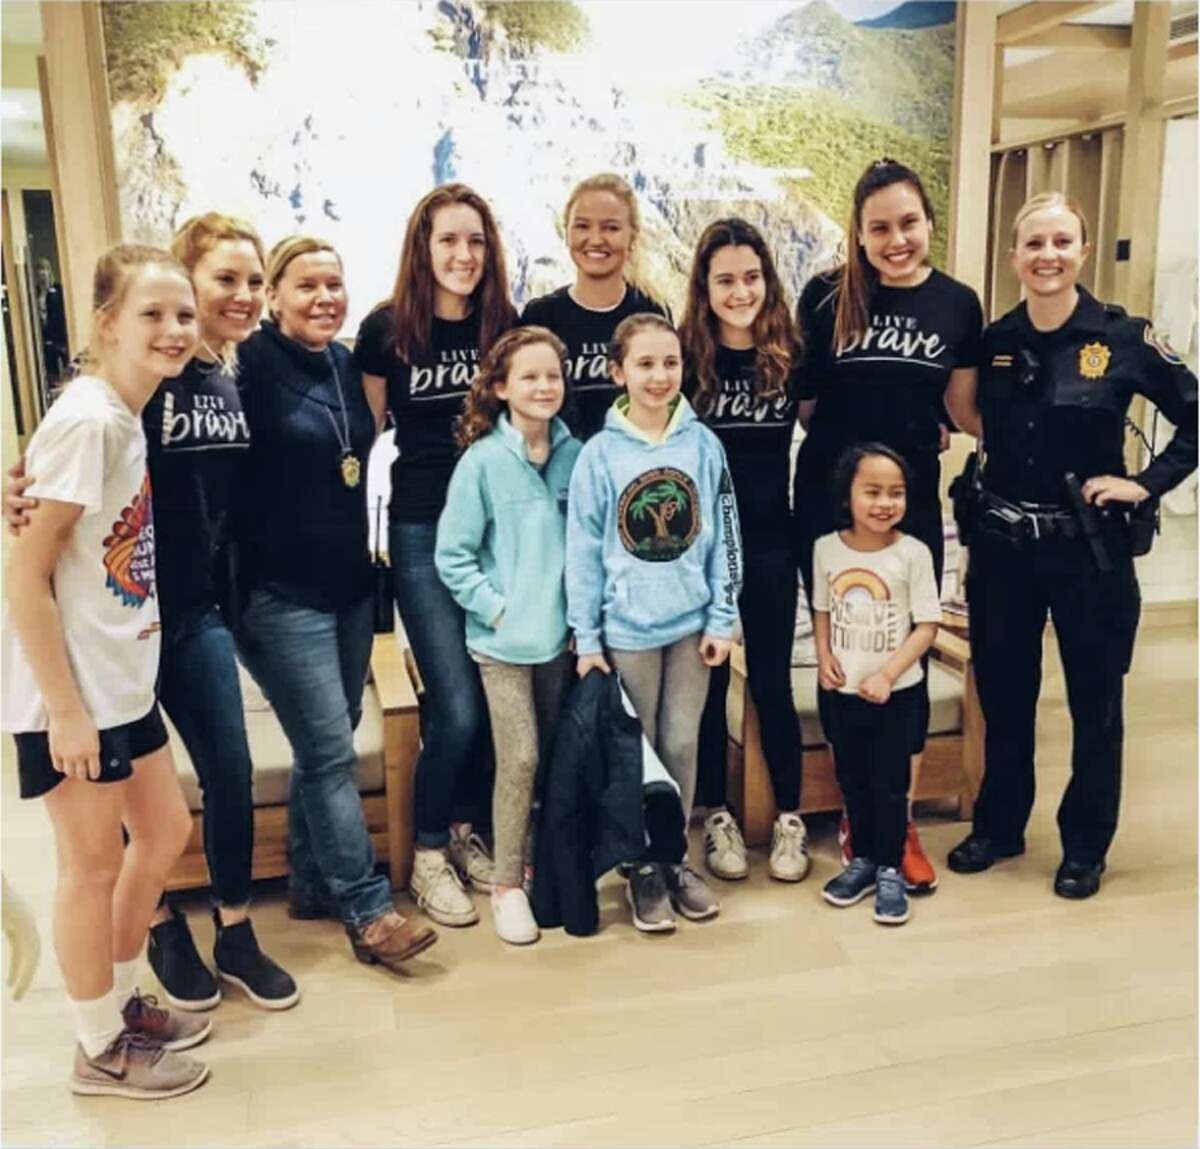 Many area girls attend an event run by New Canaan based LiveGirl and Athleta called